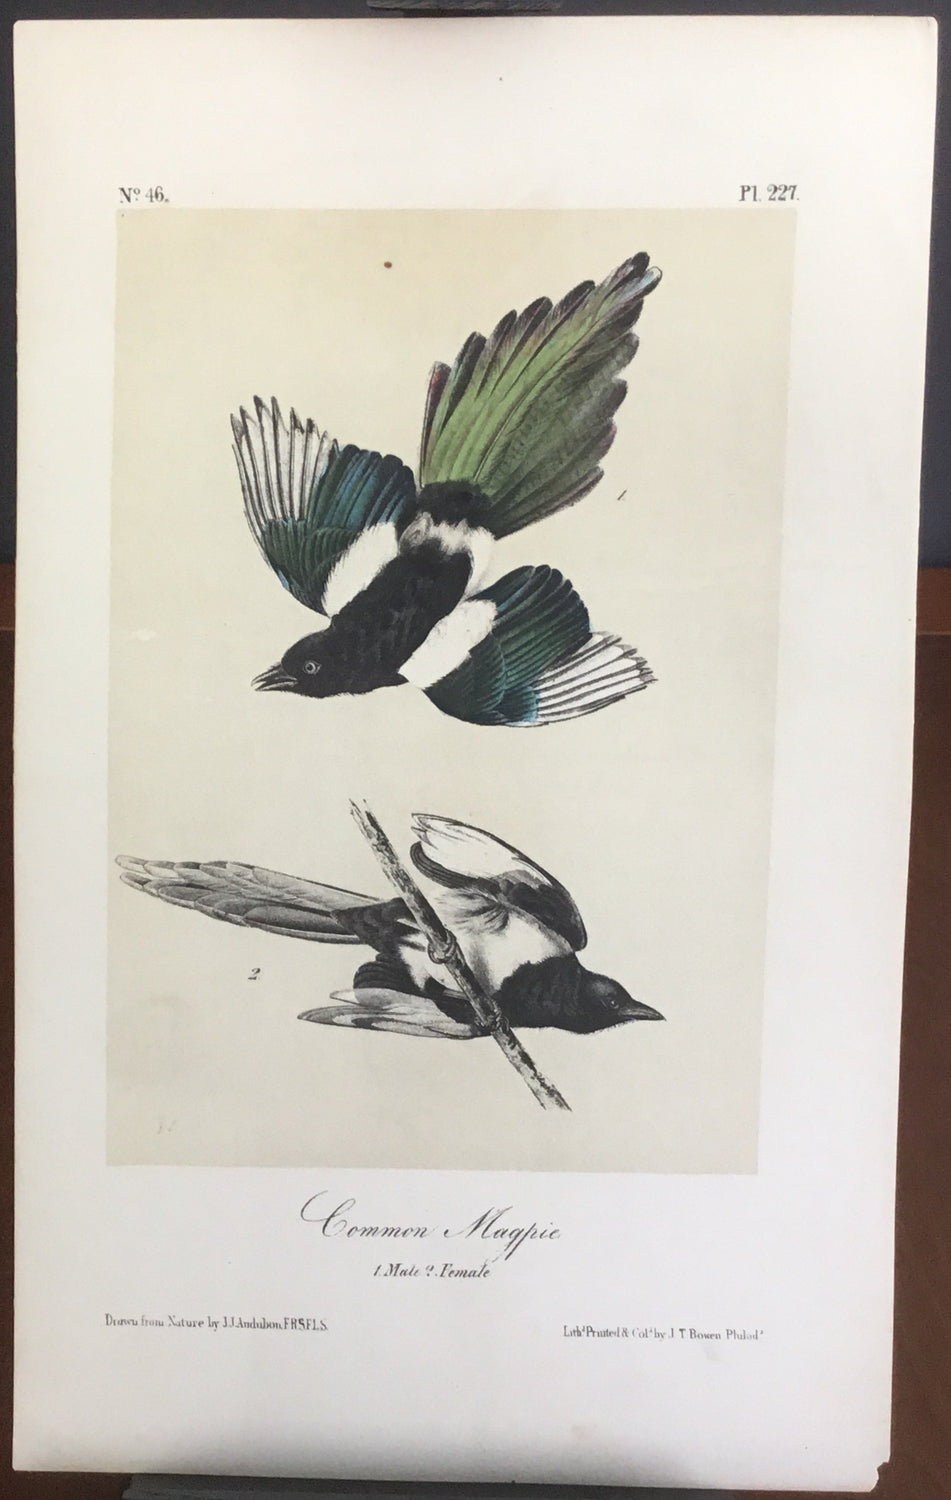 Audubon Octavo Common Magpie, plate 227, uncolored test sheet, 7 x 11